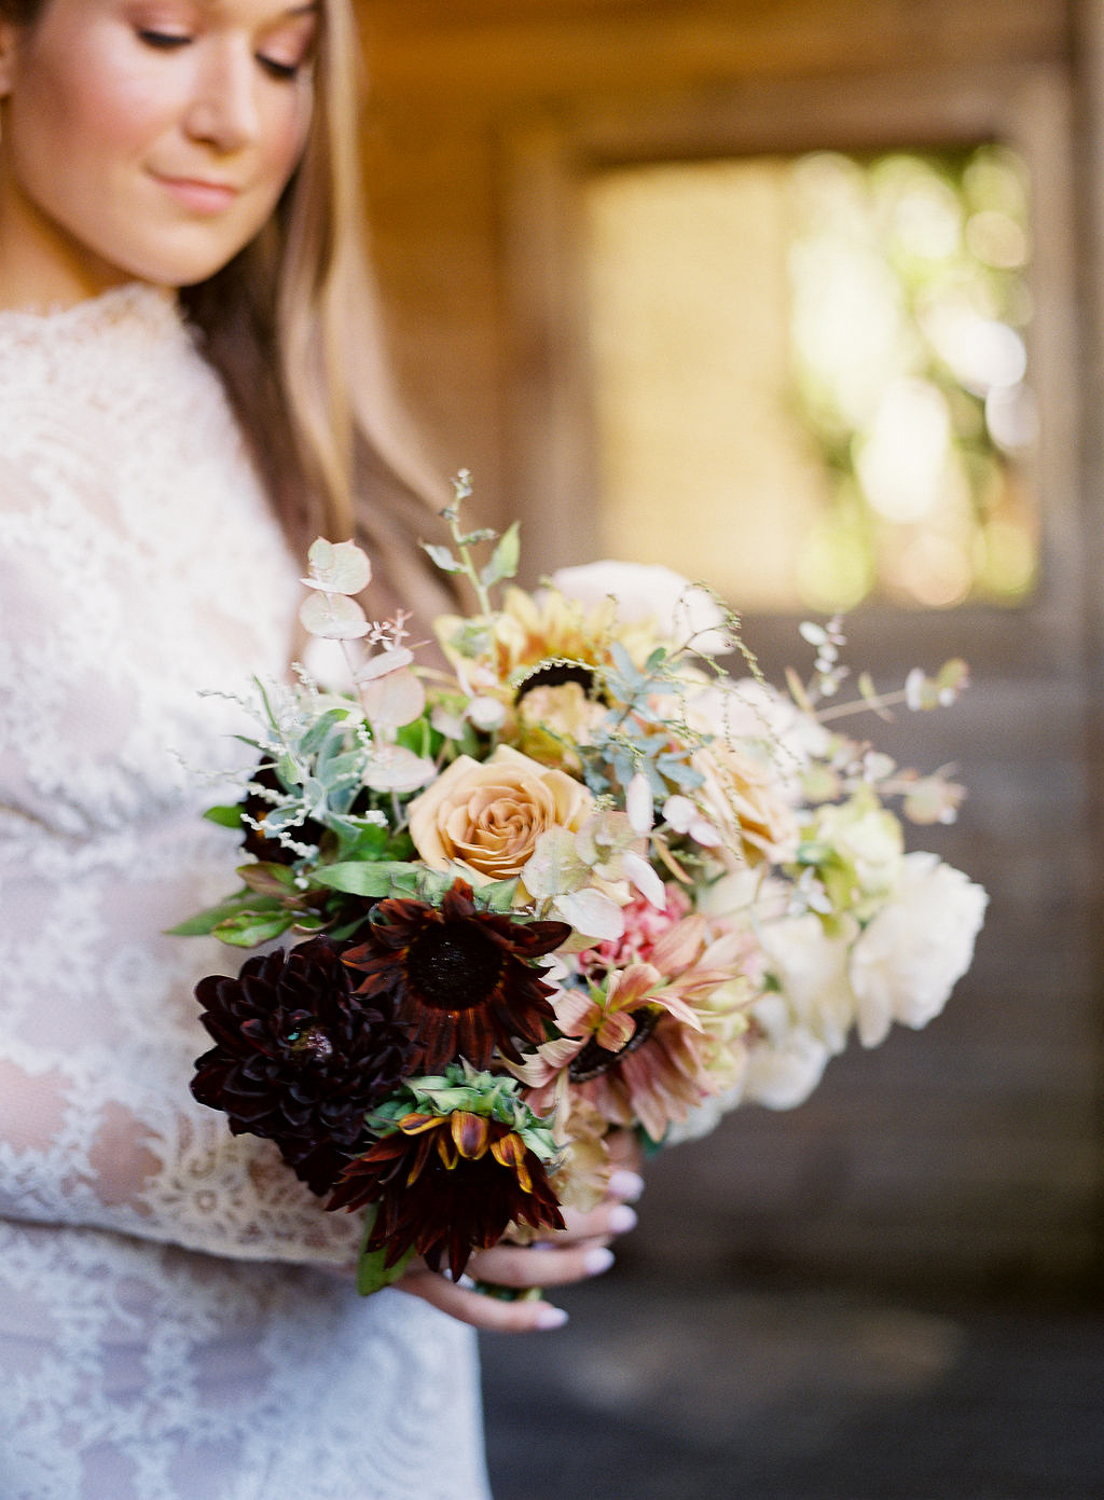 bianca holding warm tones bridal bouquet